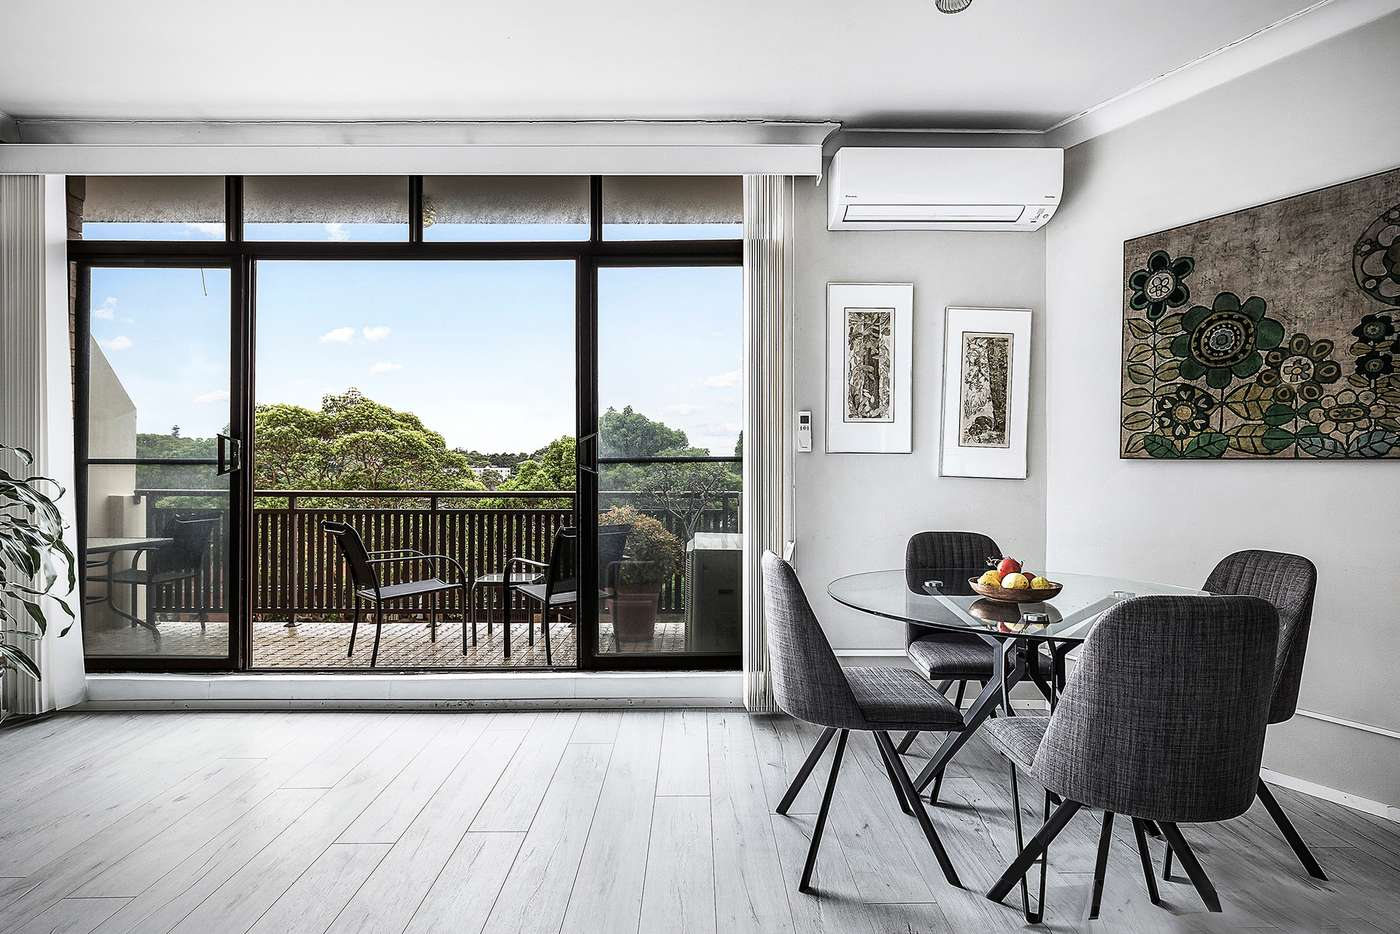 Main view of Homely apartment listing, 3/61 Walton Crescent, Abbotsford NSW 2046